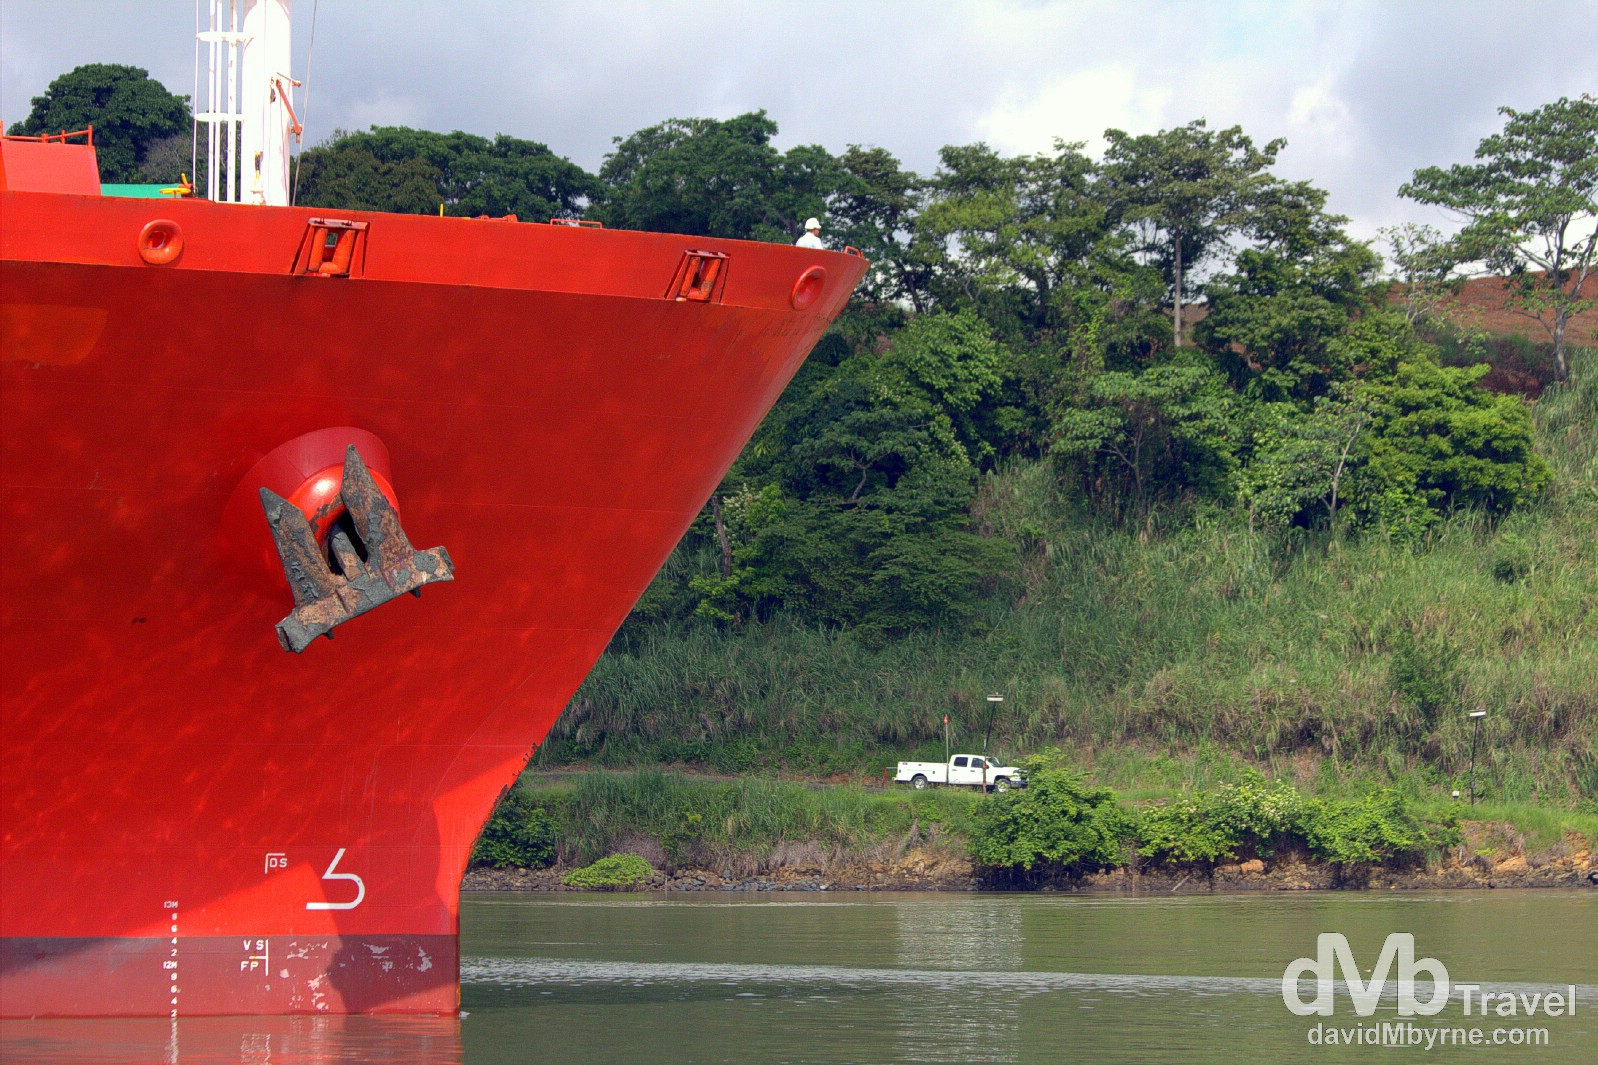 A cargo ship on the final approach to the Miraflores Locks of the Panama Canal, Panama. July 1st 2013.